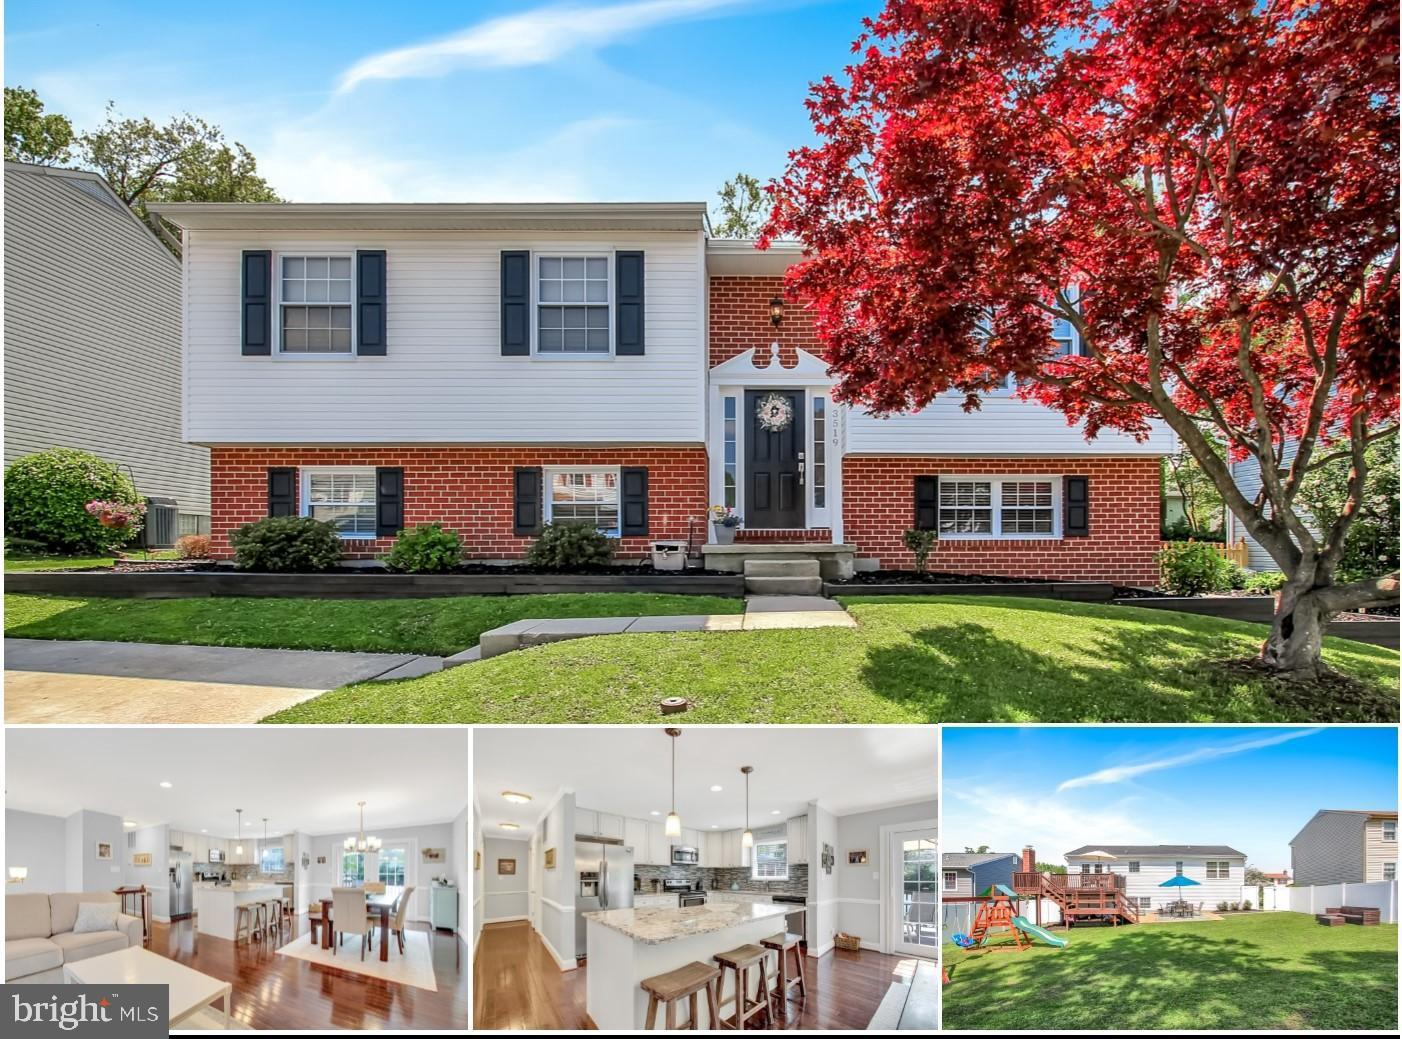 Single Family for Sale at 3519 Park Falls Dr 3519 Park Falls Dr Baltimore, Maryland 21236 United States